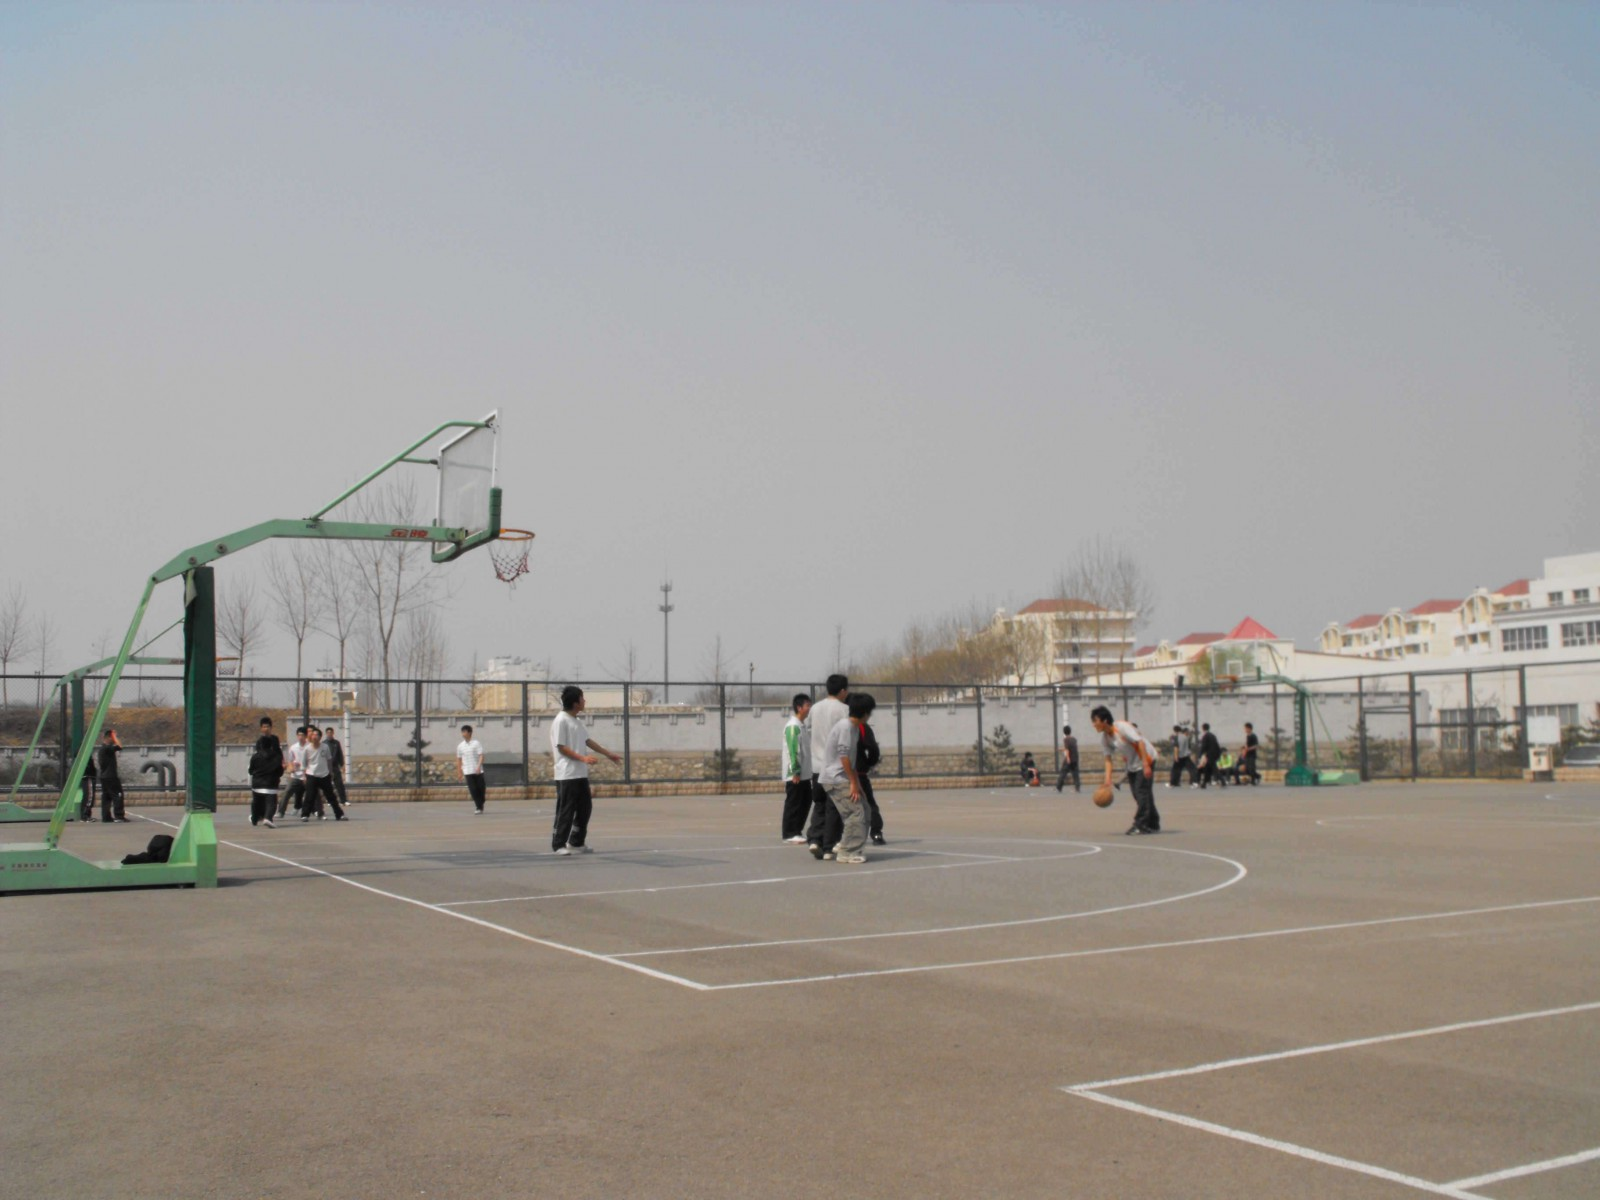 Qinhuangdao Harbour Court, Qinhuangdao, China